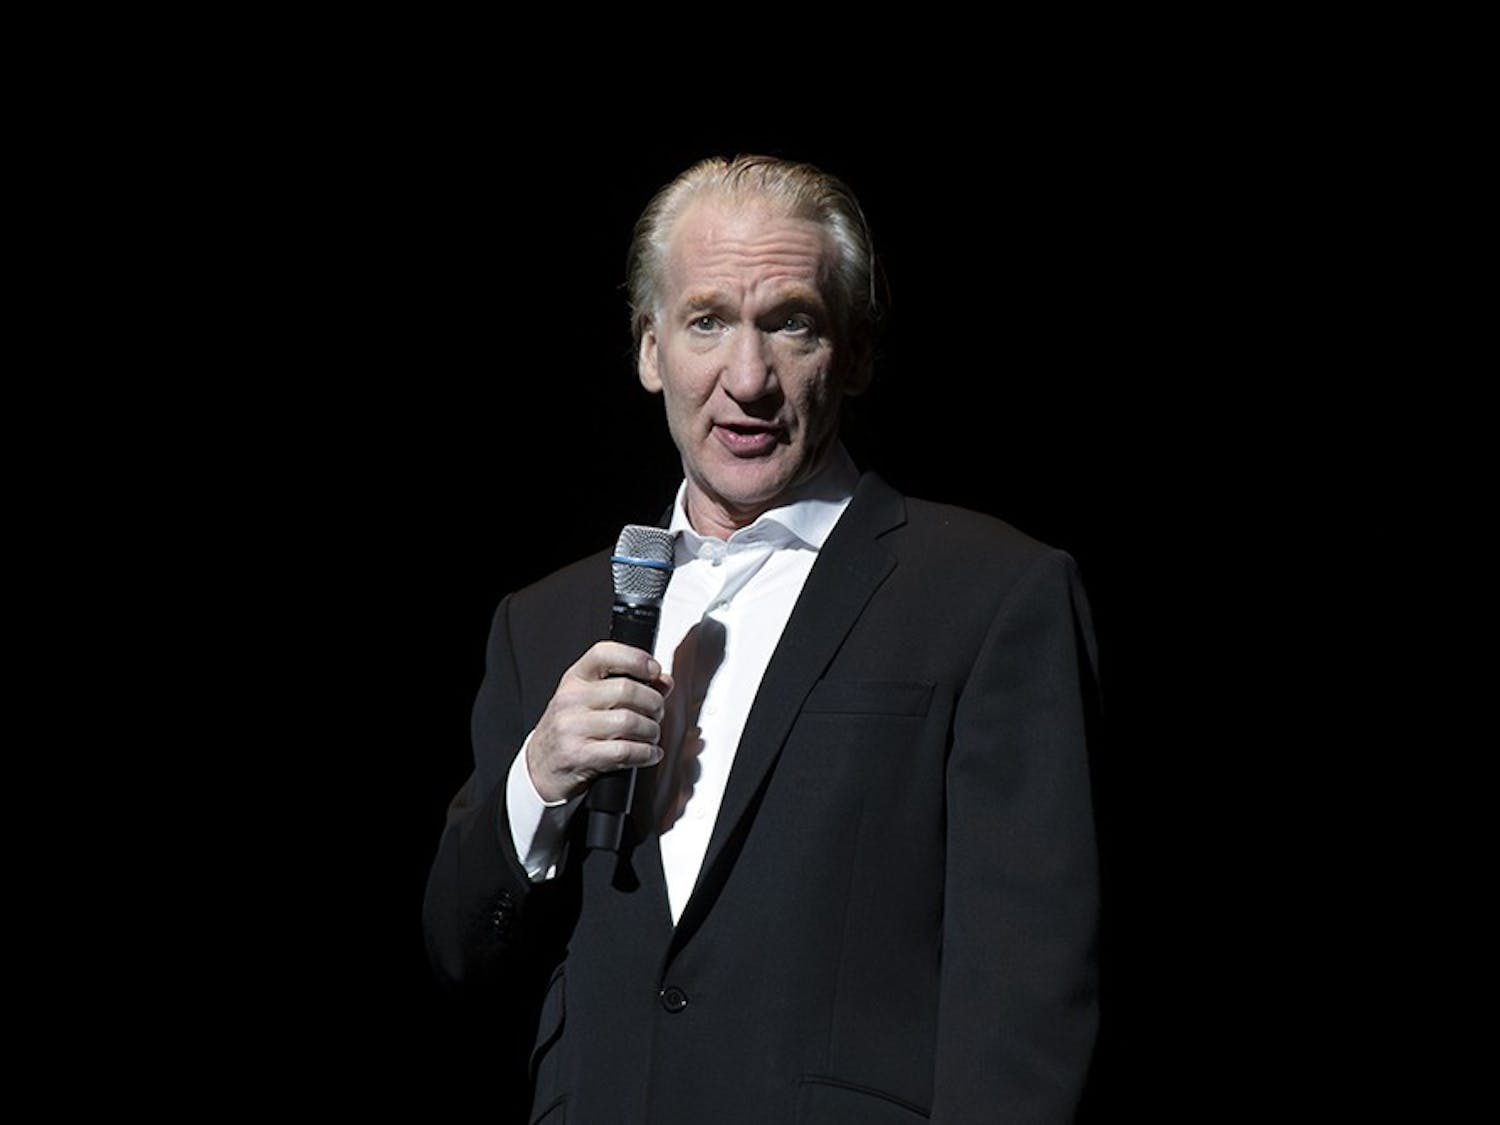 Bill Maher performs at Shea's. The comedian touched on many controversial topics including President Trump and Islamophobia.